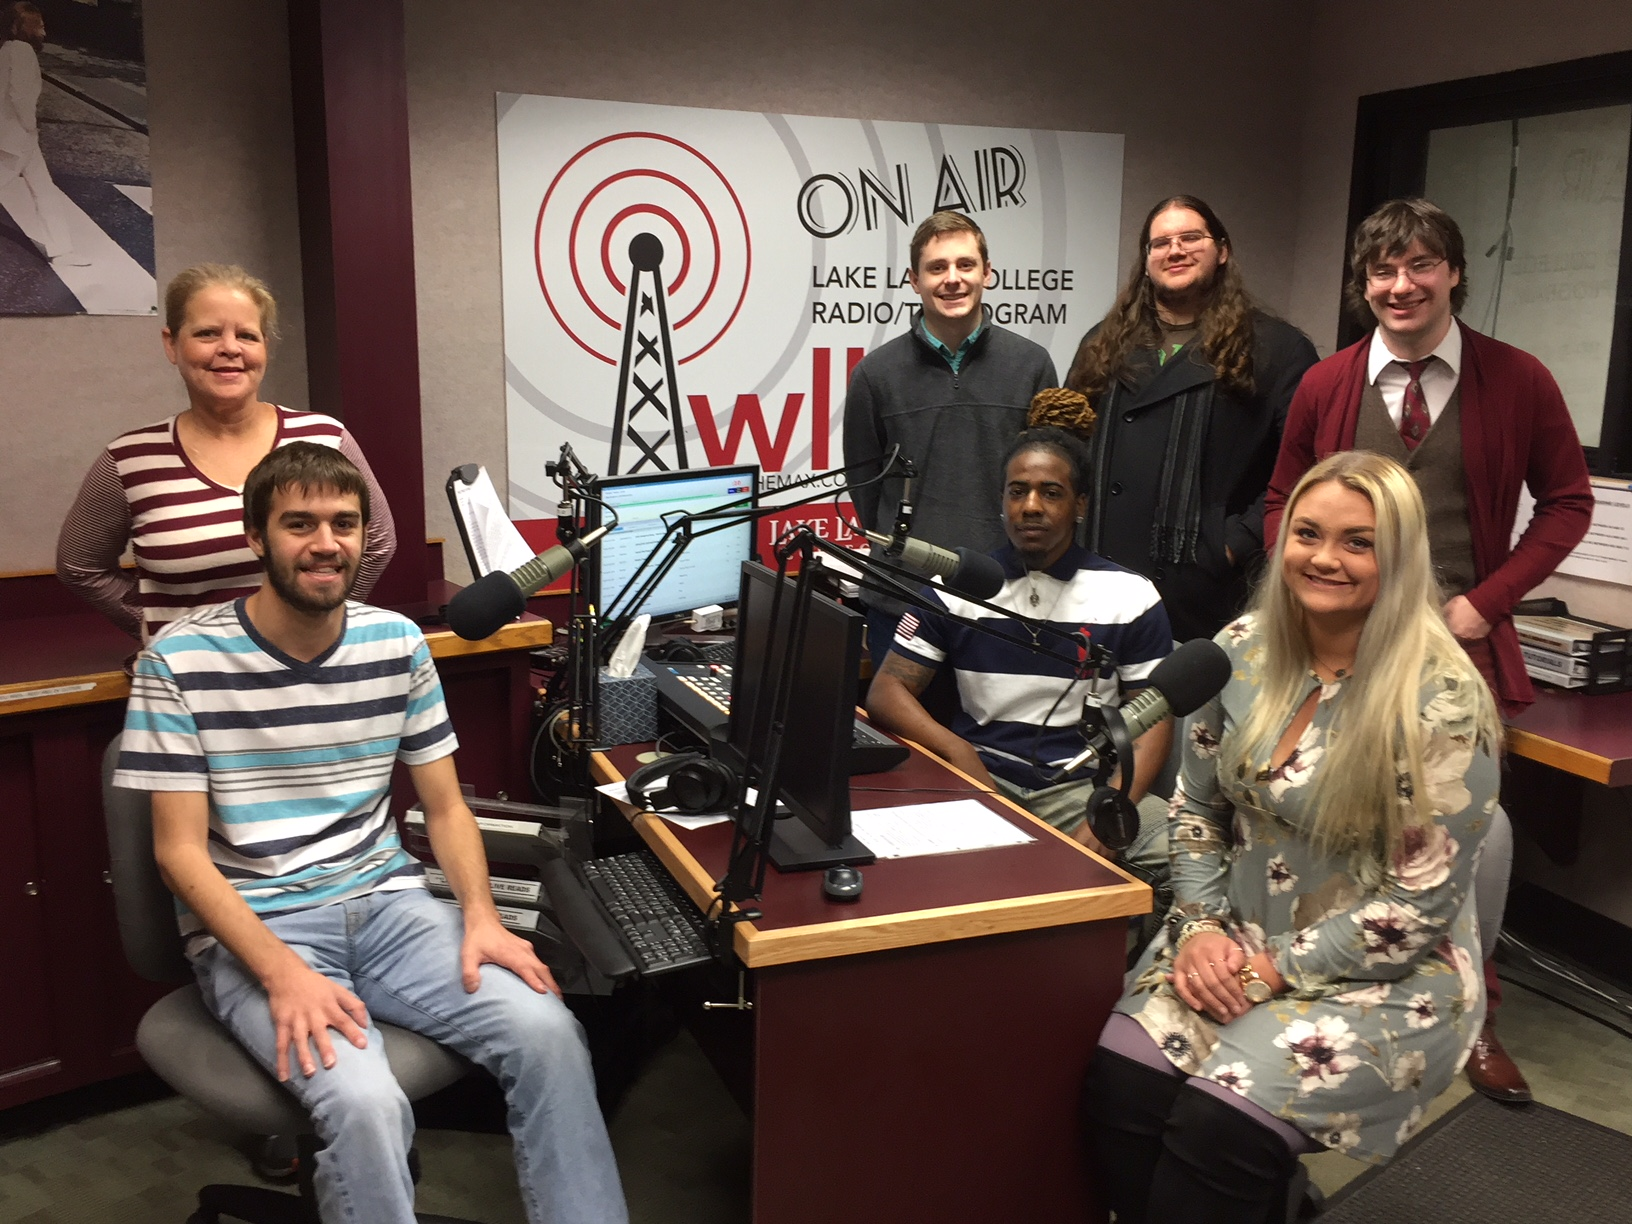 Lake Land College broadcasting students earn radio marketing professional certificate